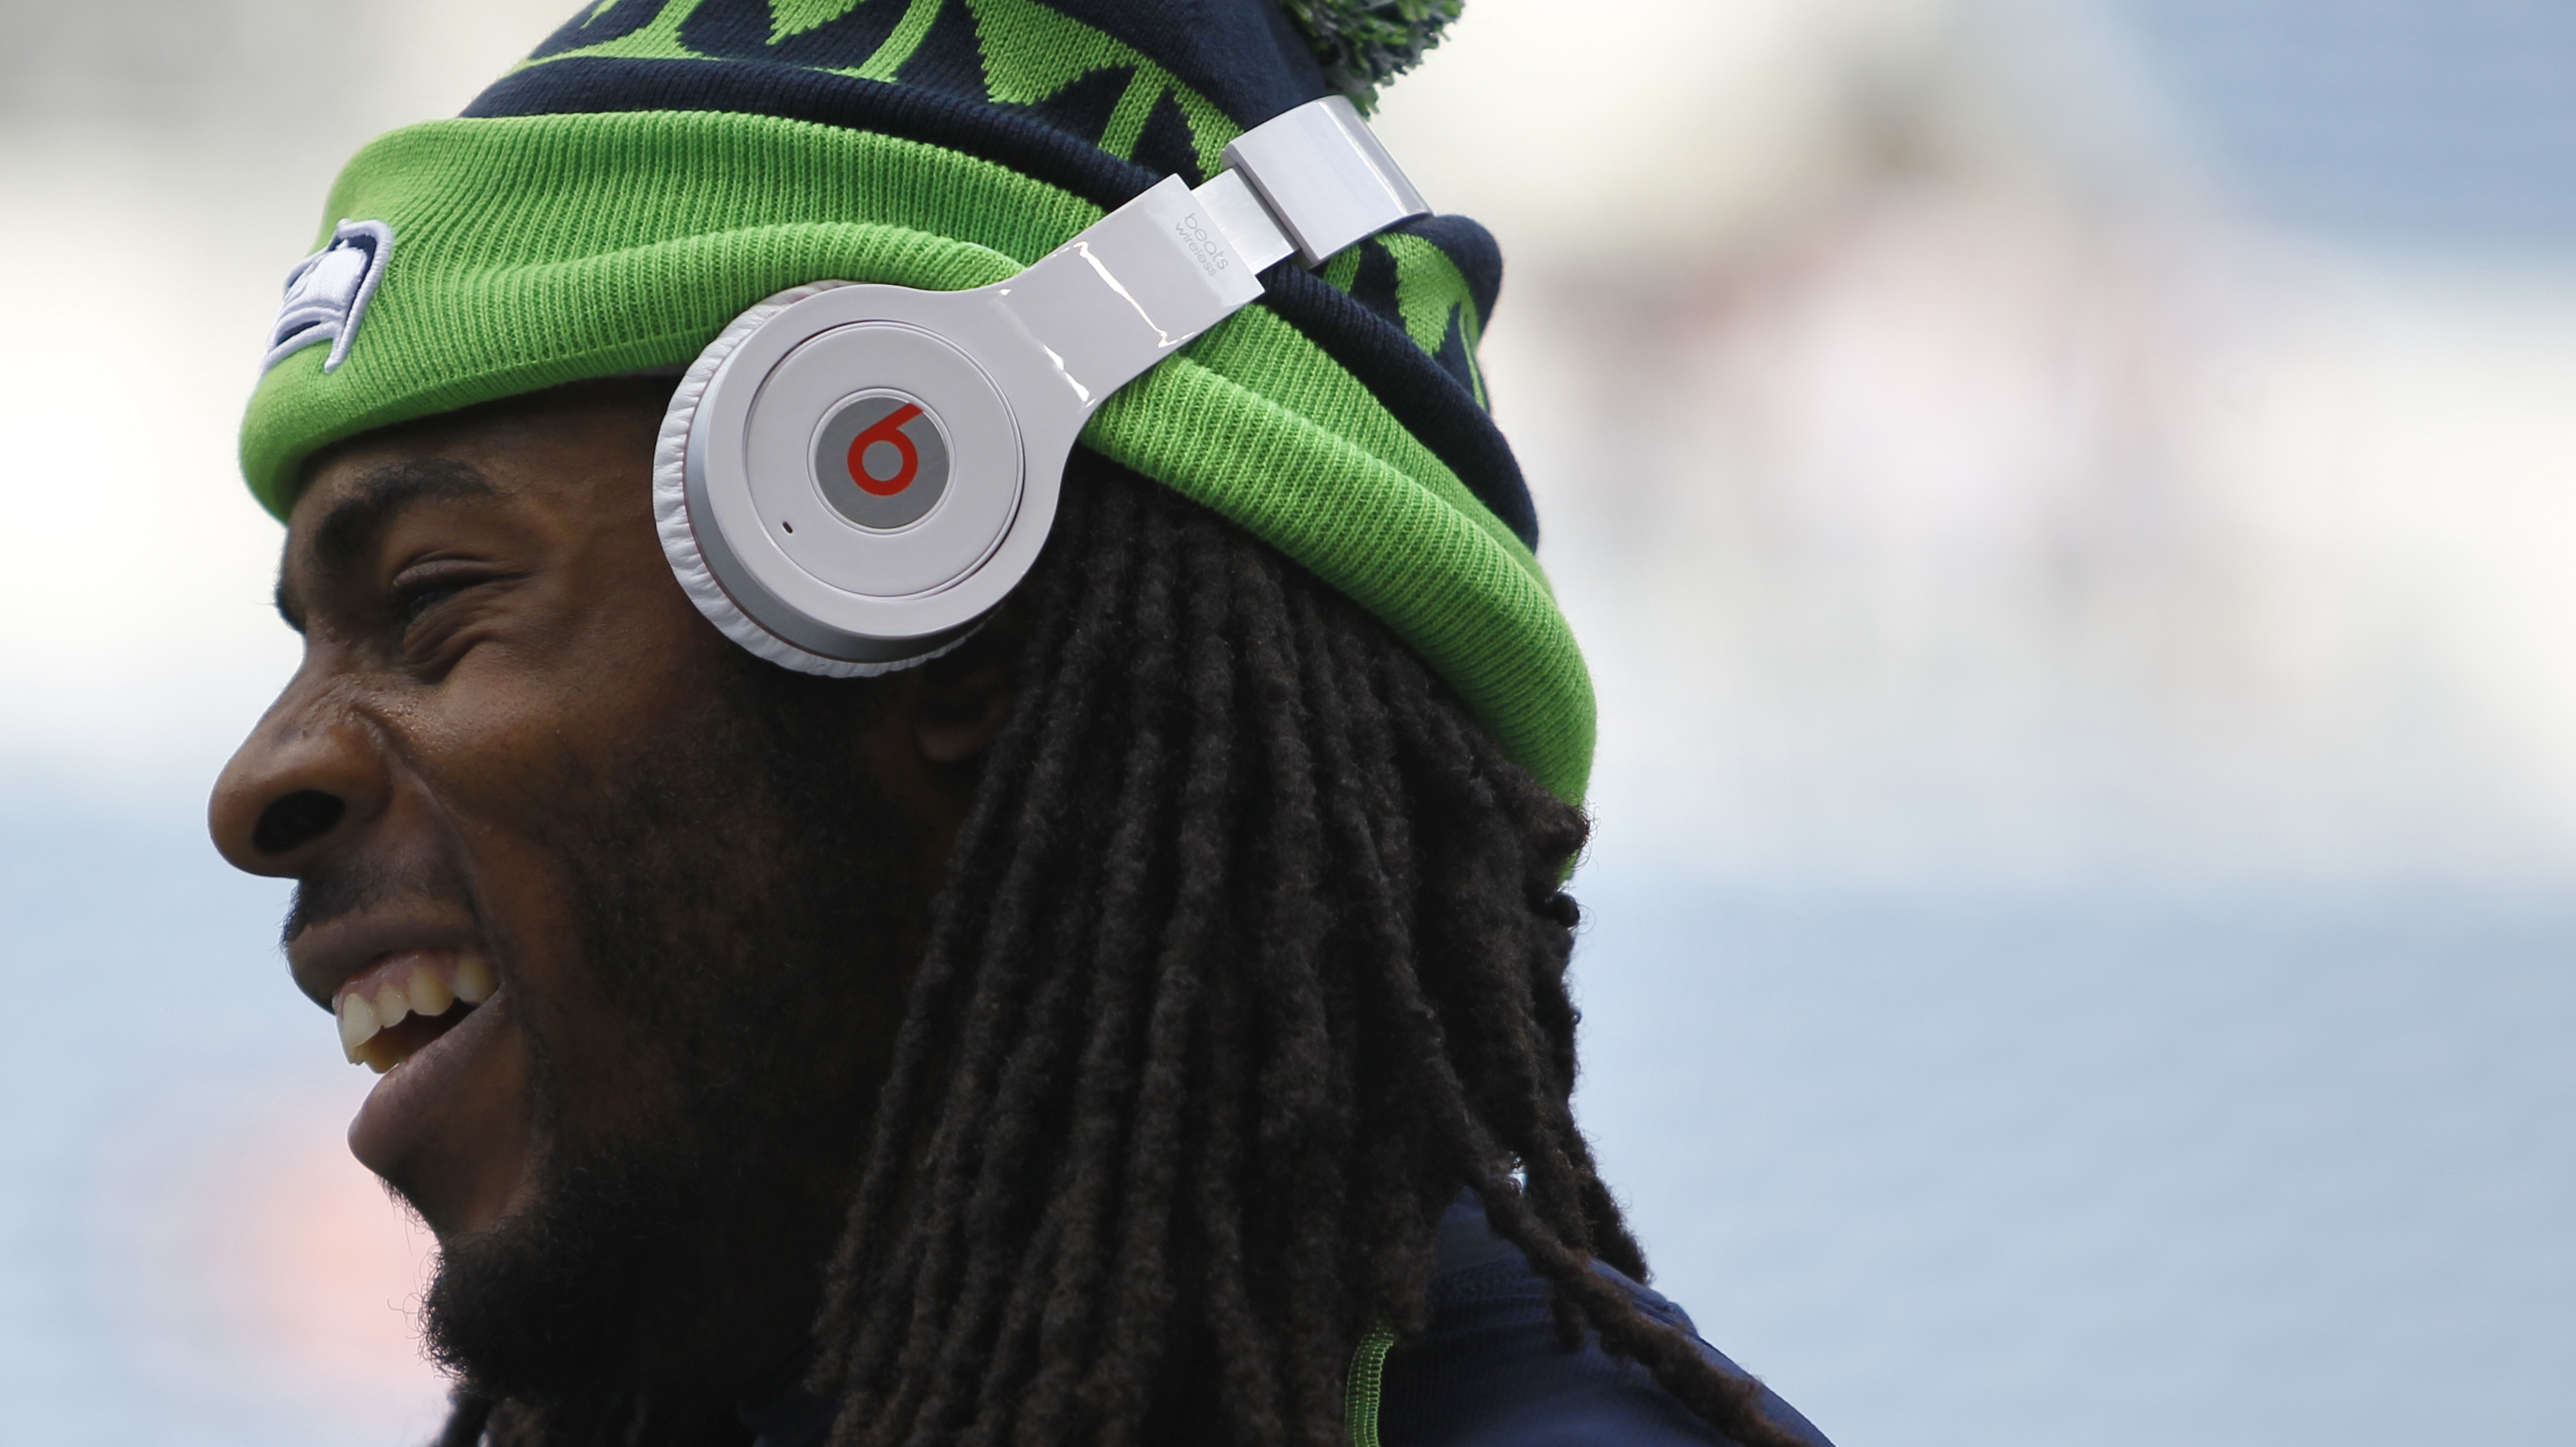 With Beats, Apple Buys A Quick Start On Smart Headphones